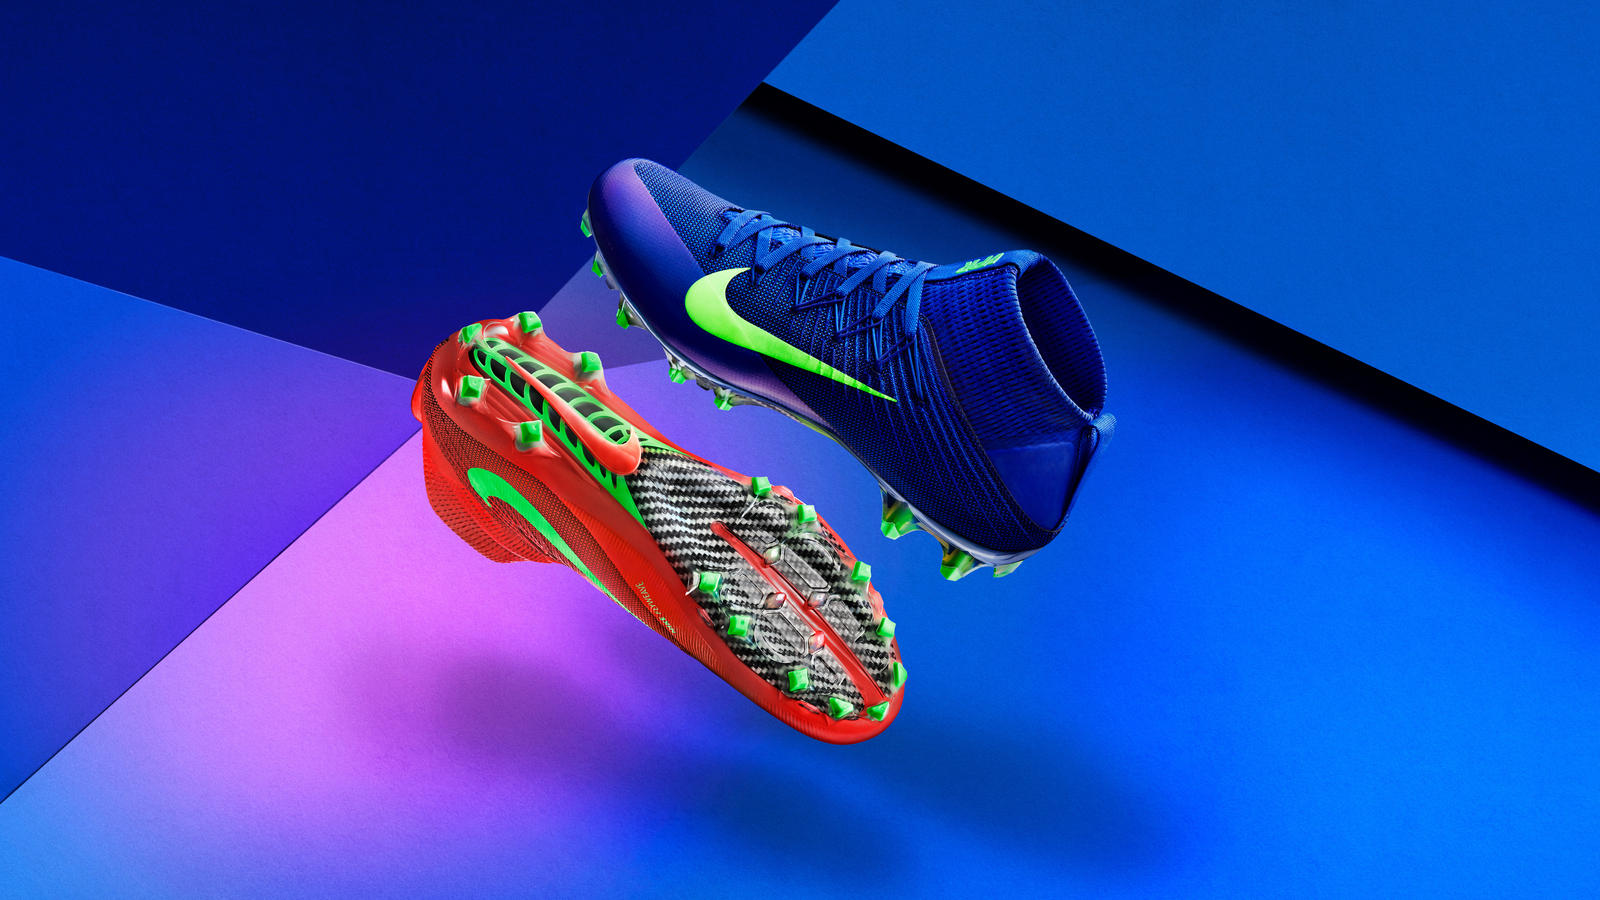 Nike Football Flashes Color at the Speed of Light. Share Image